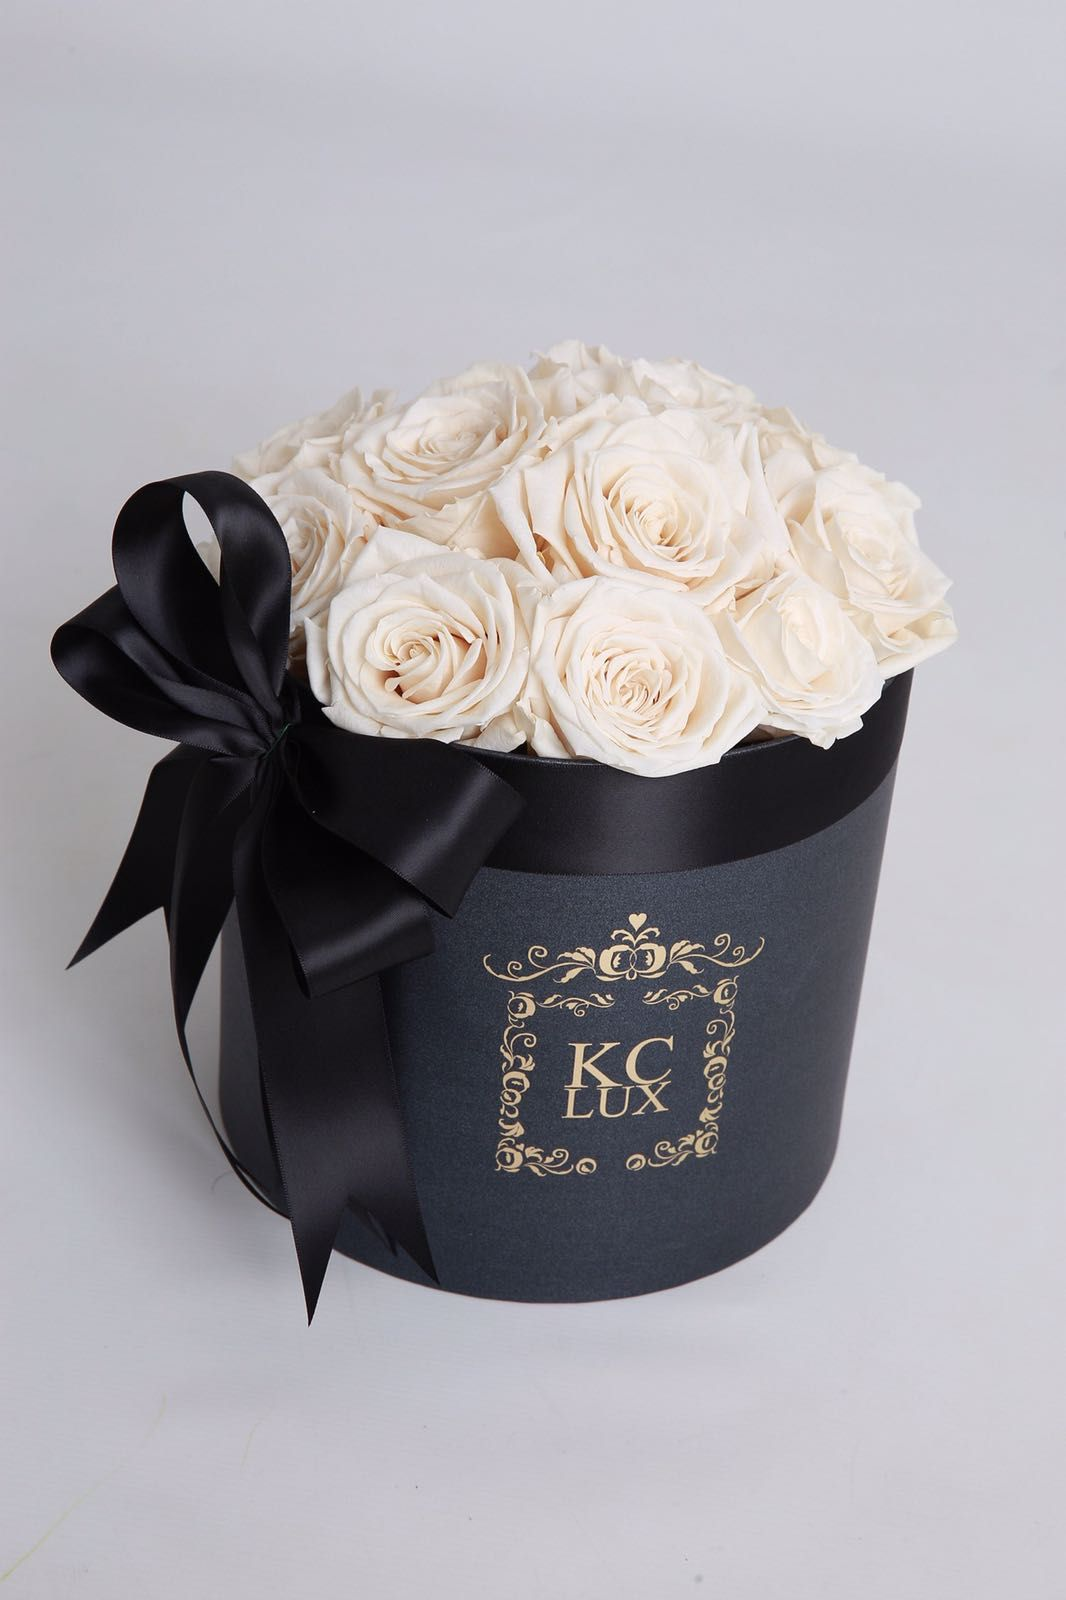 Champagne cream colour in the real roses that last up to a